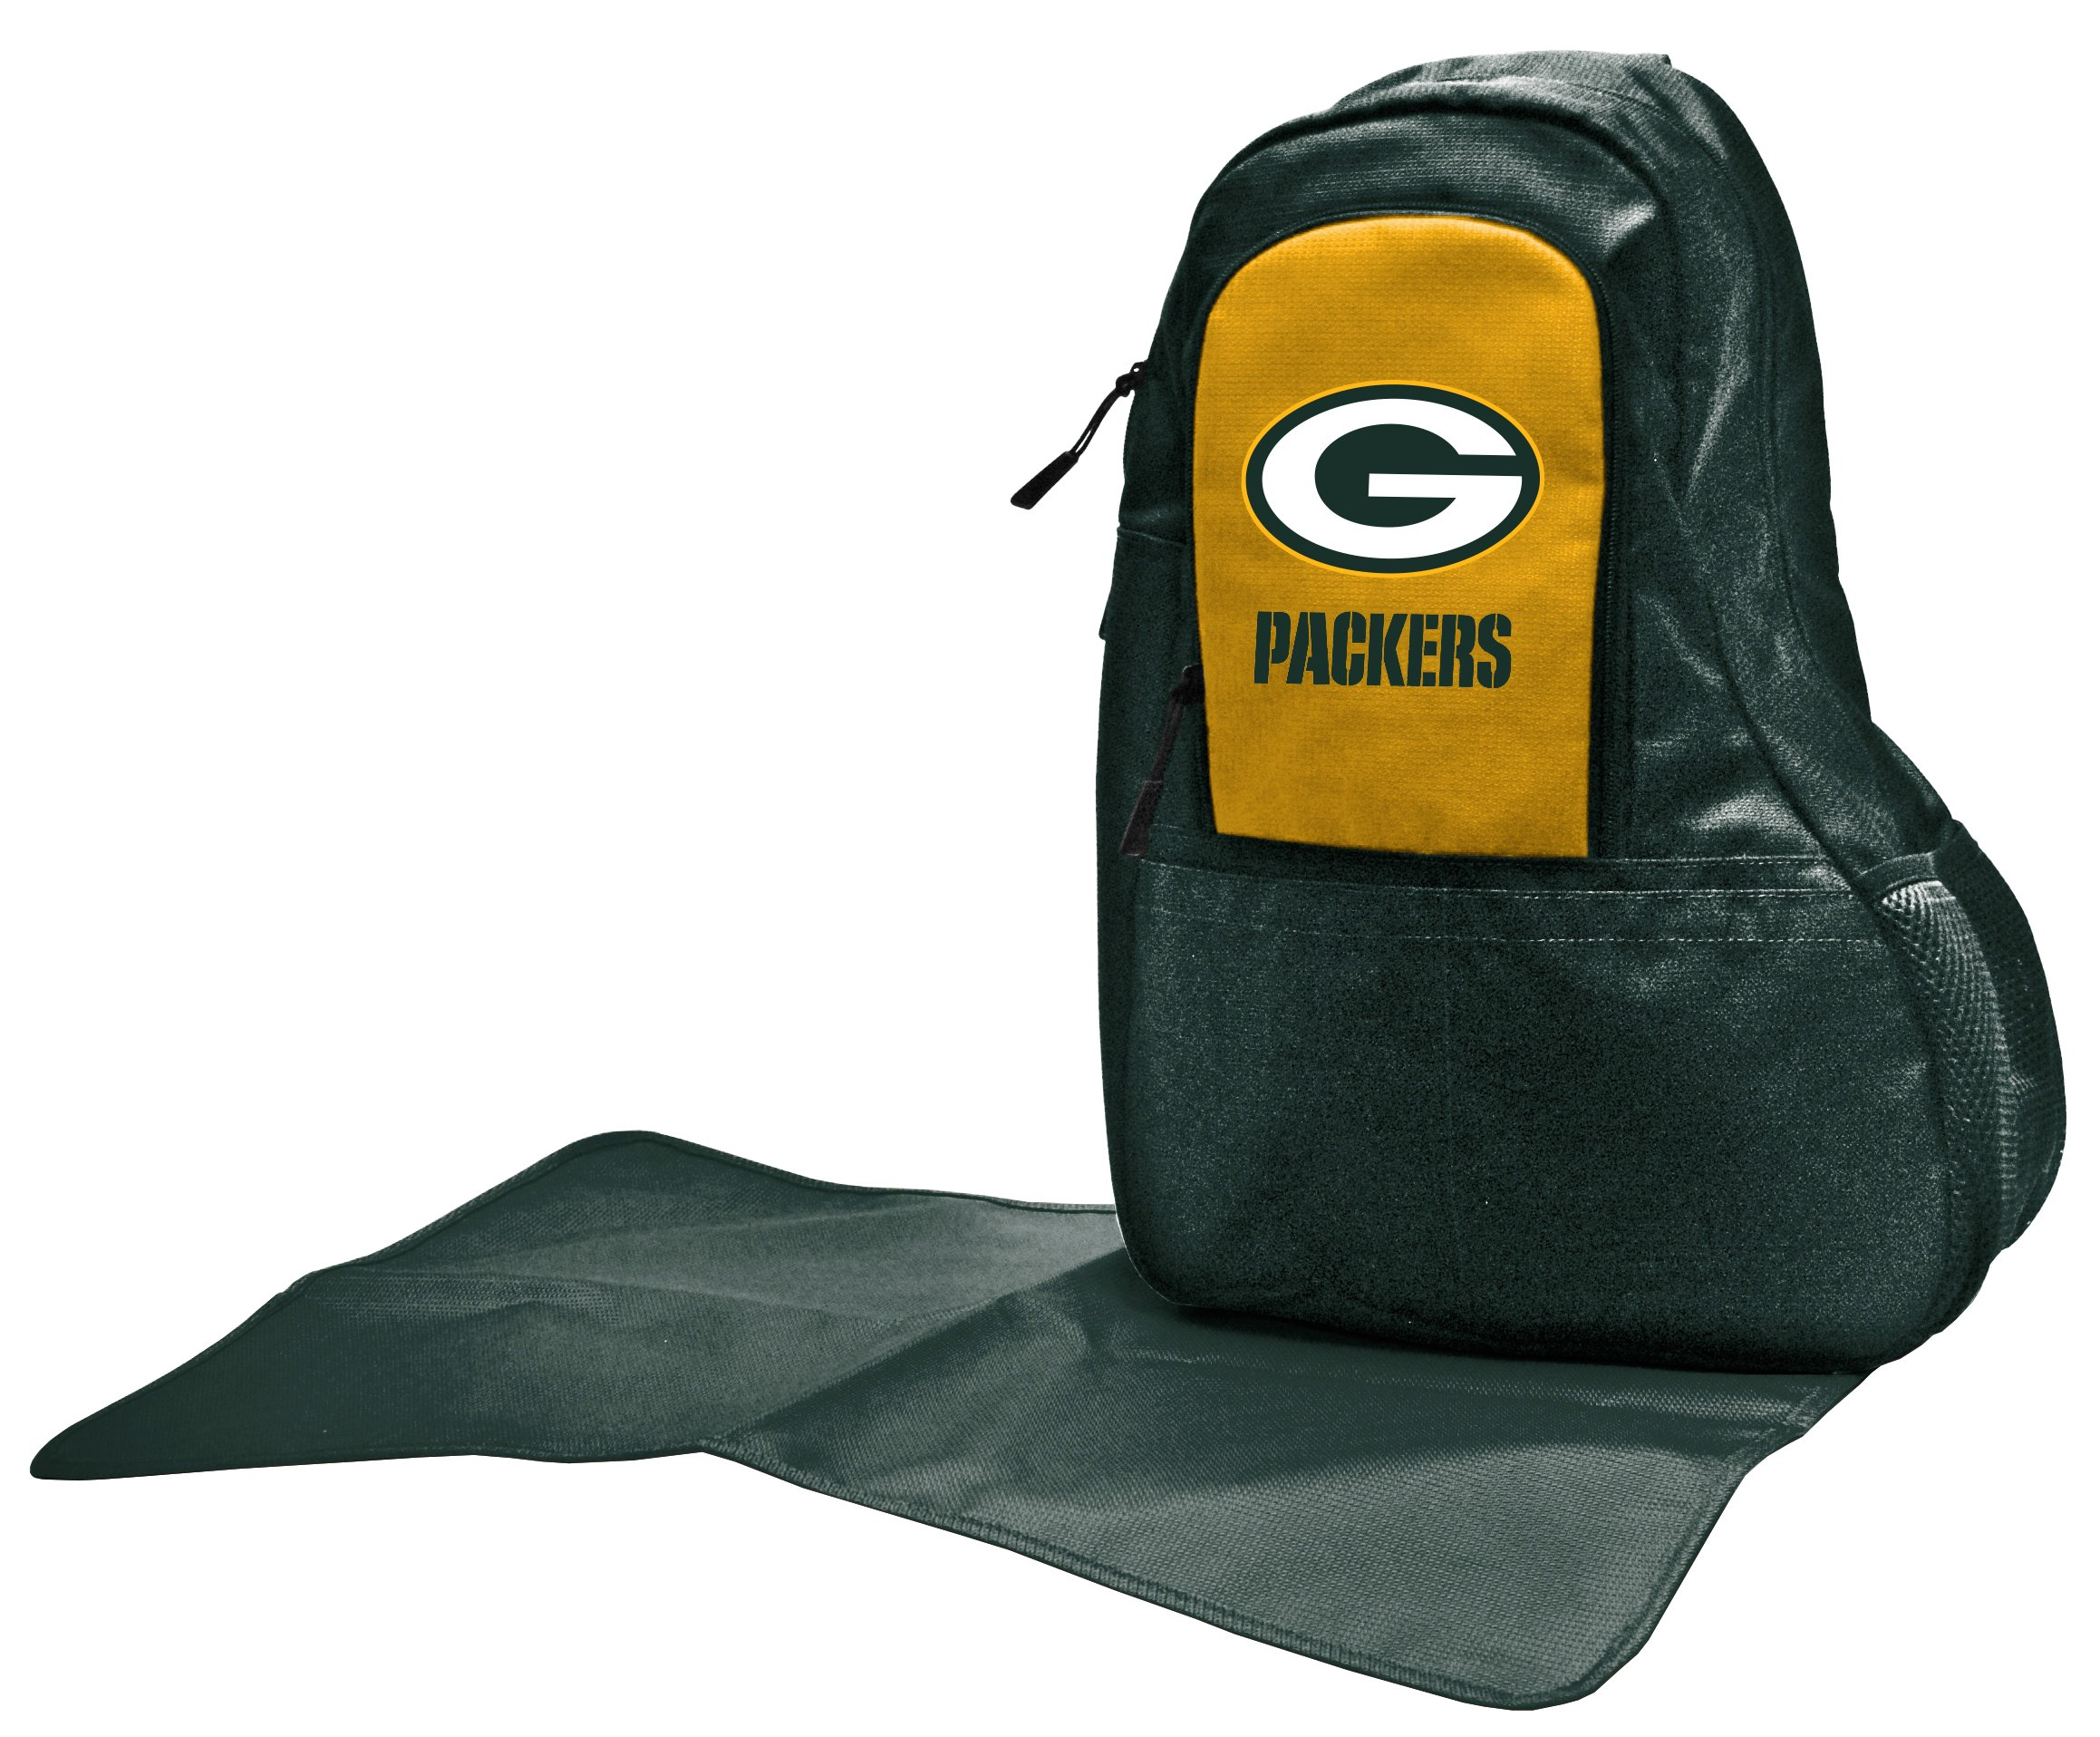 Wild Sports NFL Green Bay Packers Diaper Sling Bag, 17 x 13 x 7-Inch, Green